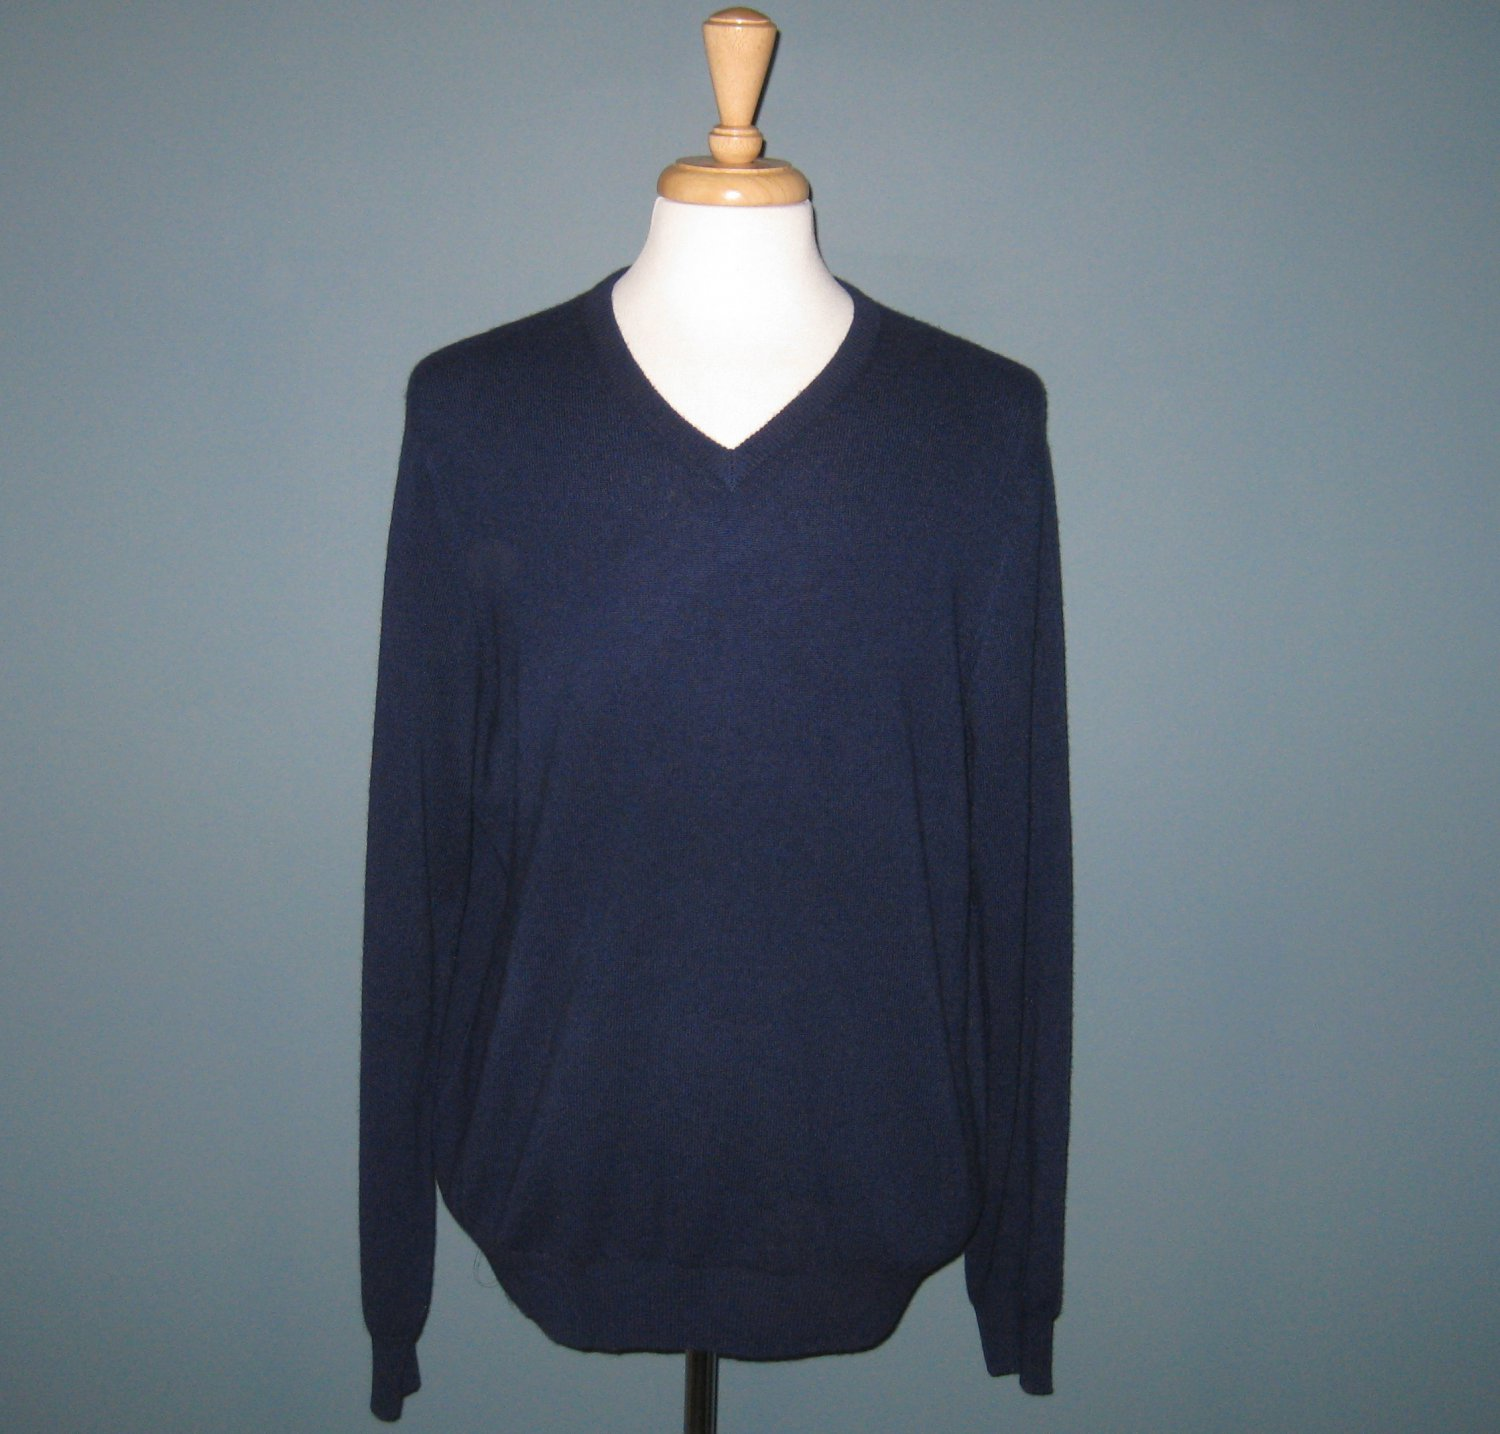 NWT Tahari Men's Navy 2-Ply 100% Cashmere Knit L/S V-Neck Sweater - XL